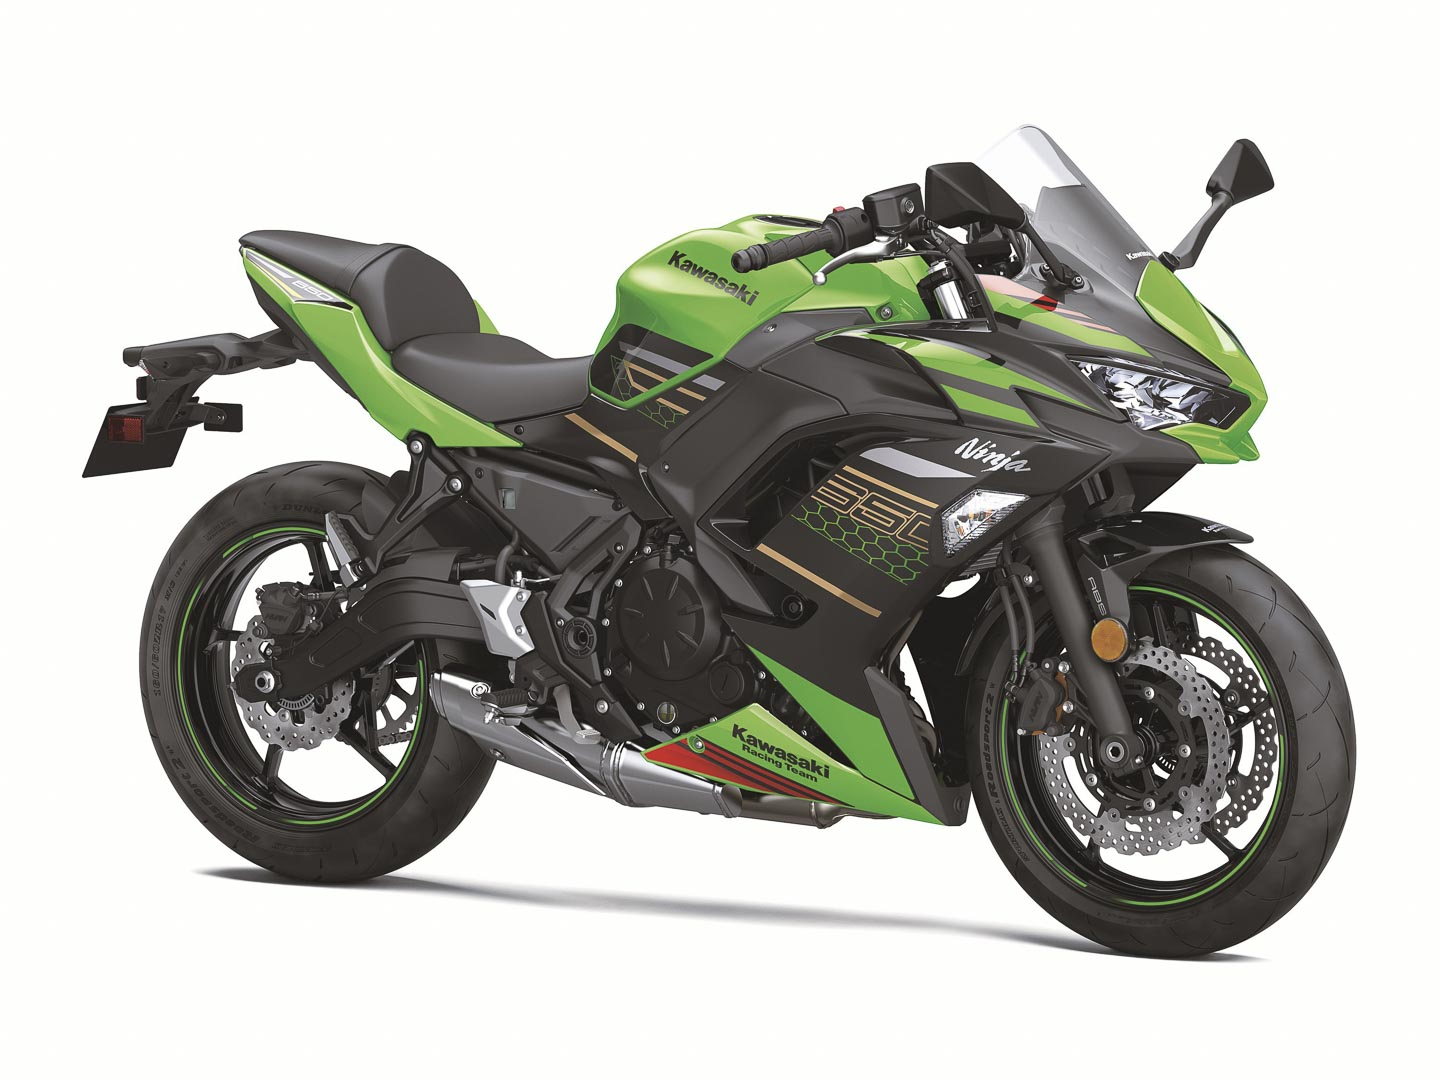 2020 Kawasaki Ninja 650 First Look (6 Fast Facts)